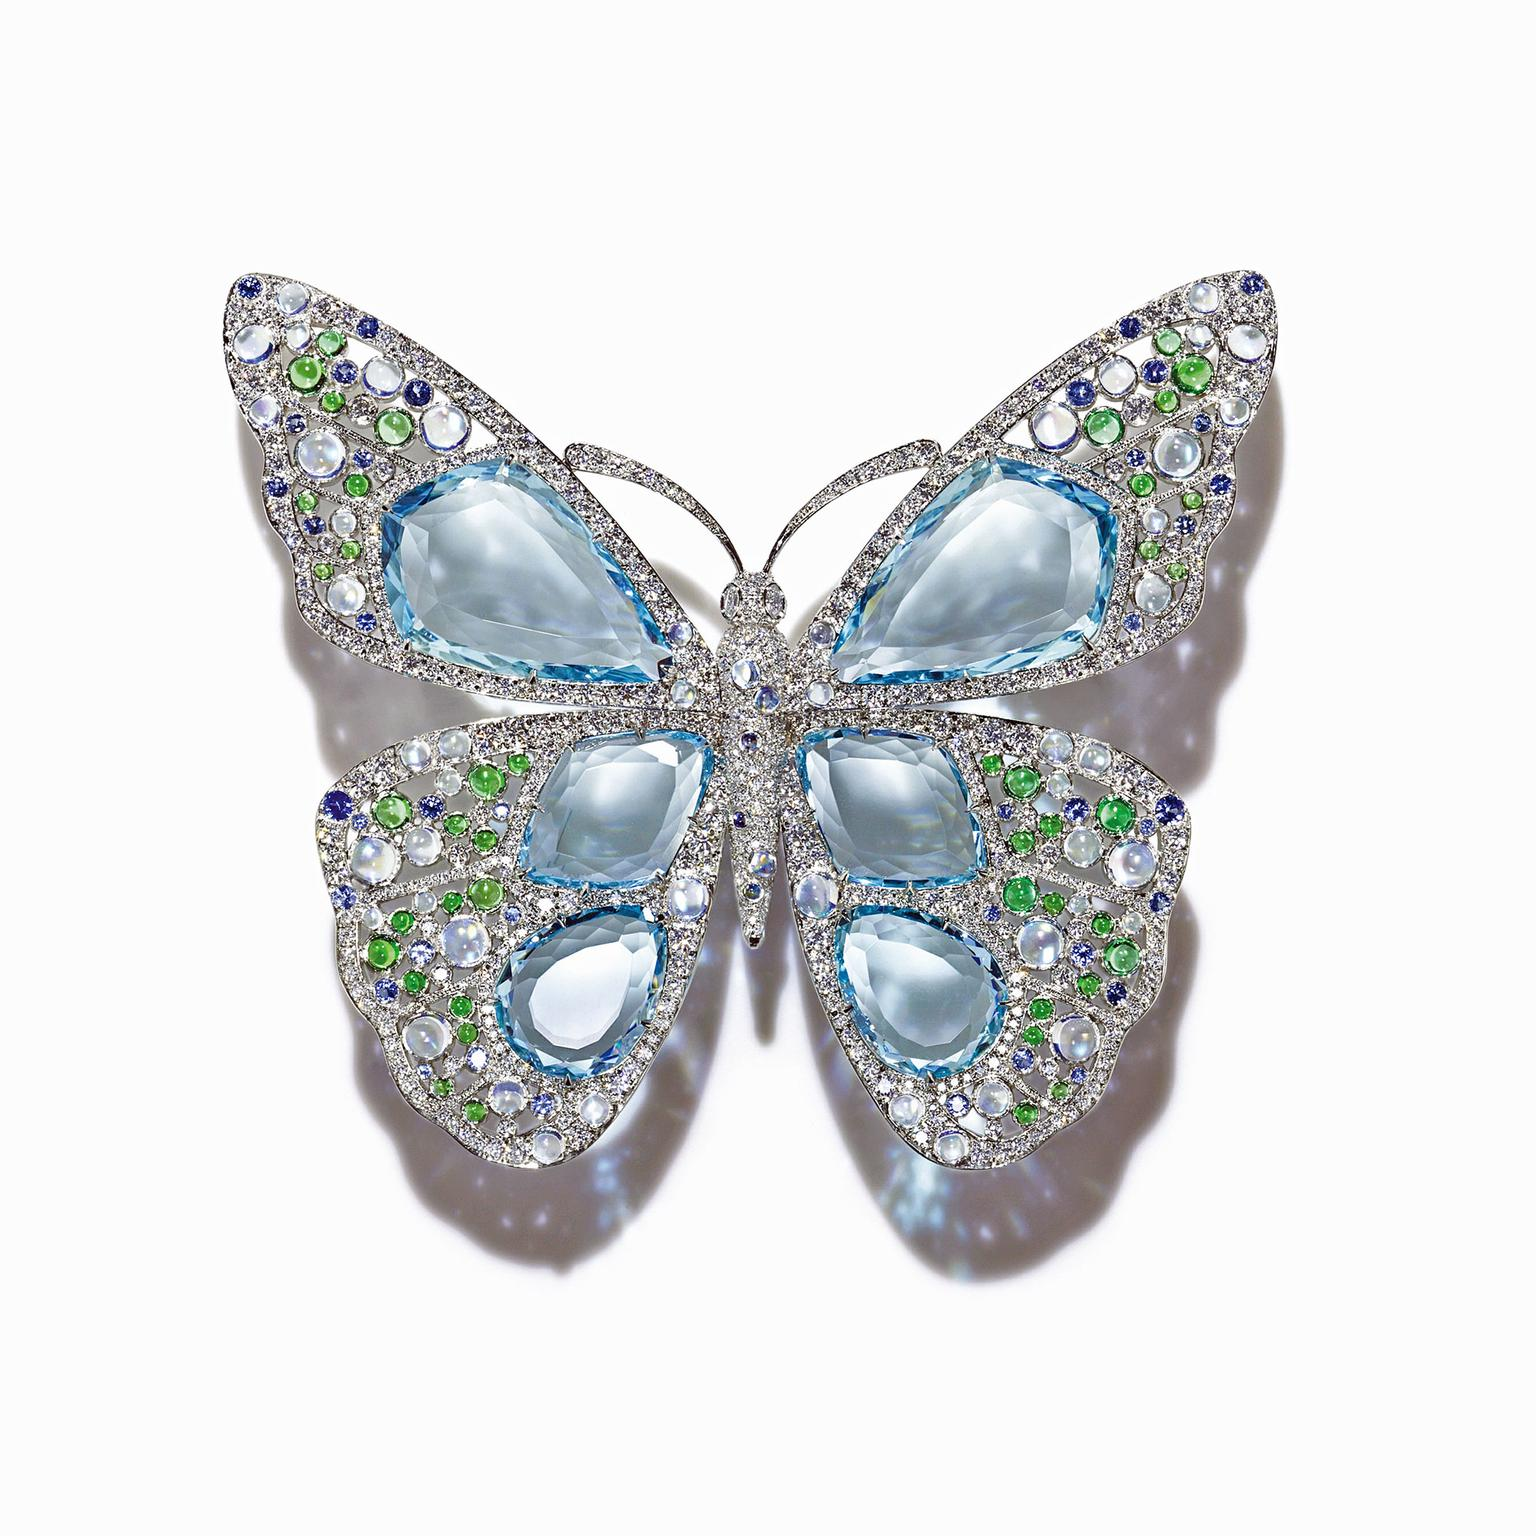 Tiffany Blue Book Butterfly aquamarine brooch